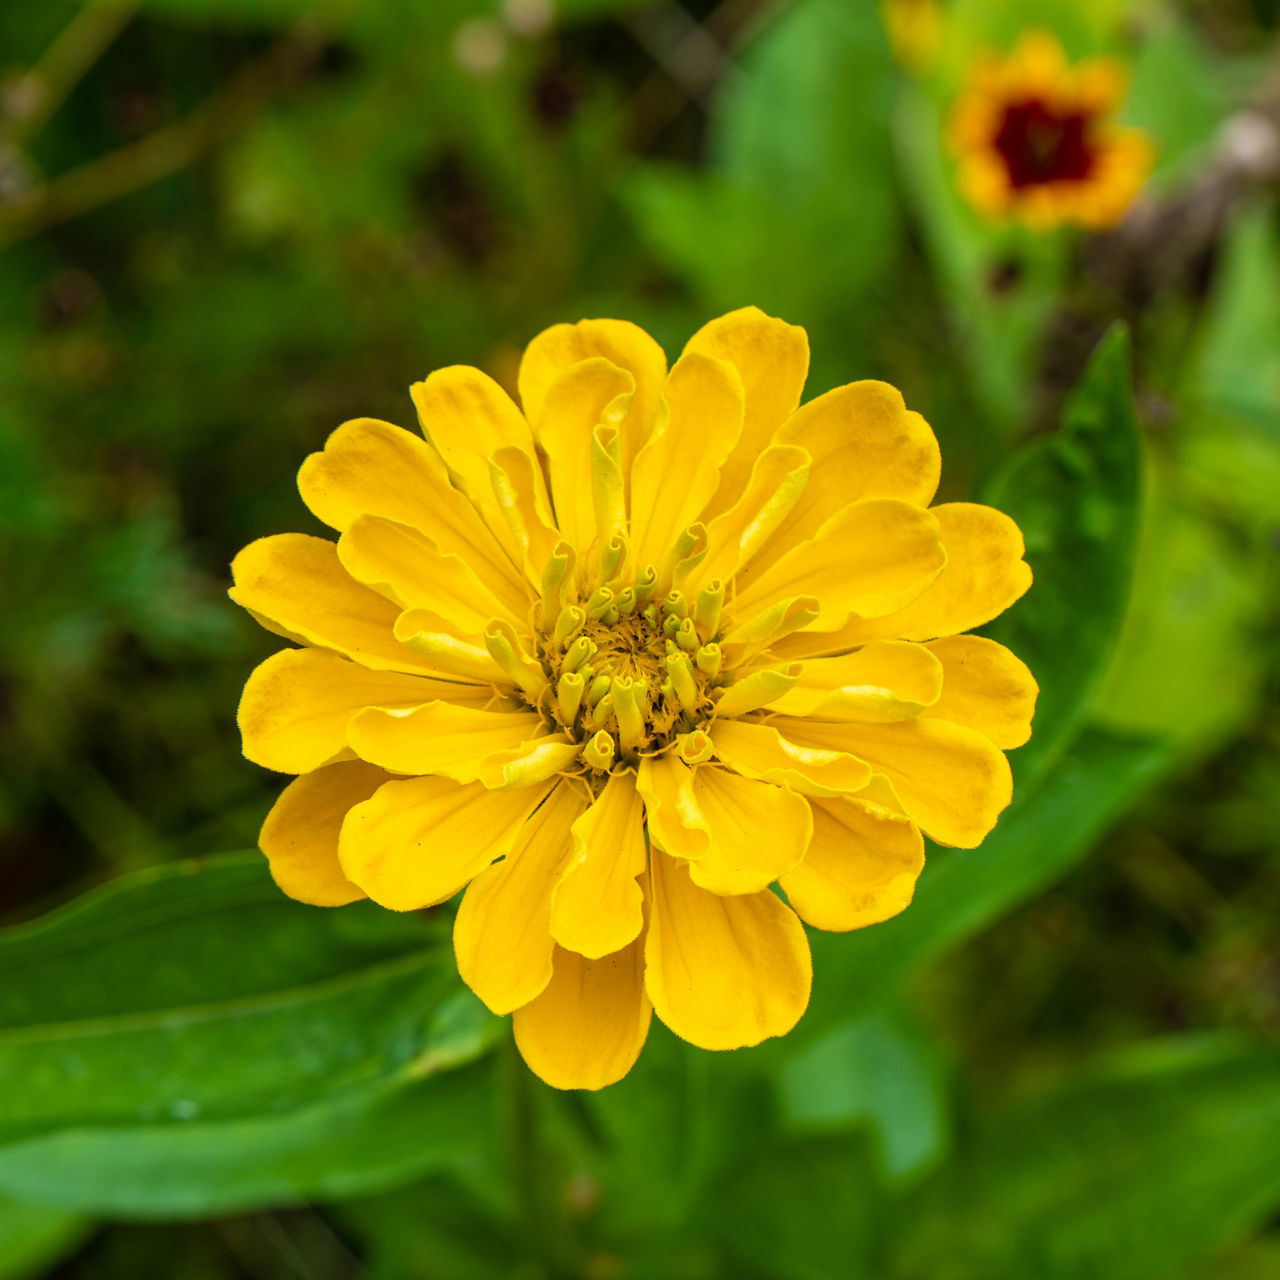 CLOSE-UP OF YELLOW FLOWER ON PLANT OUTDOORS